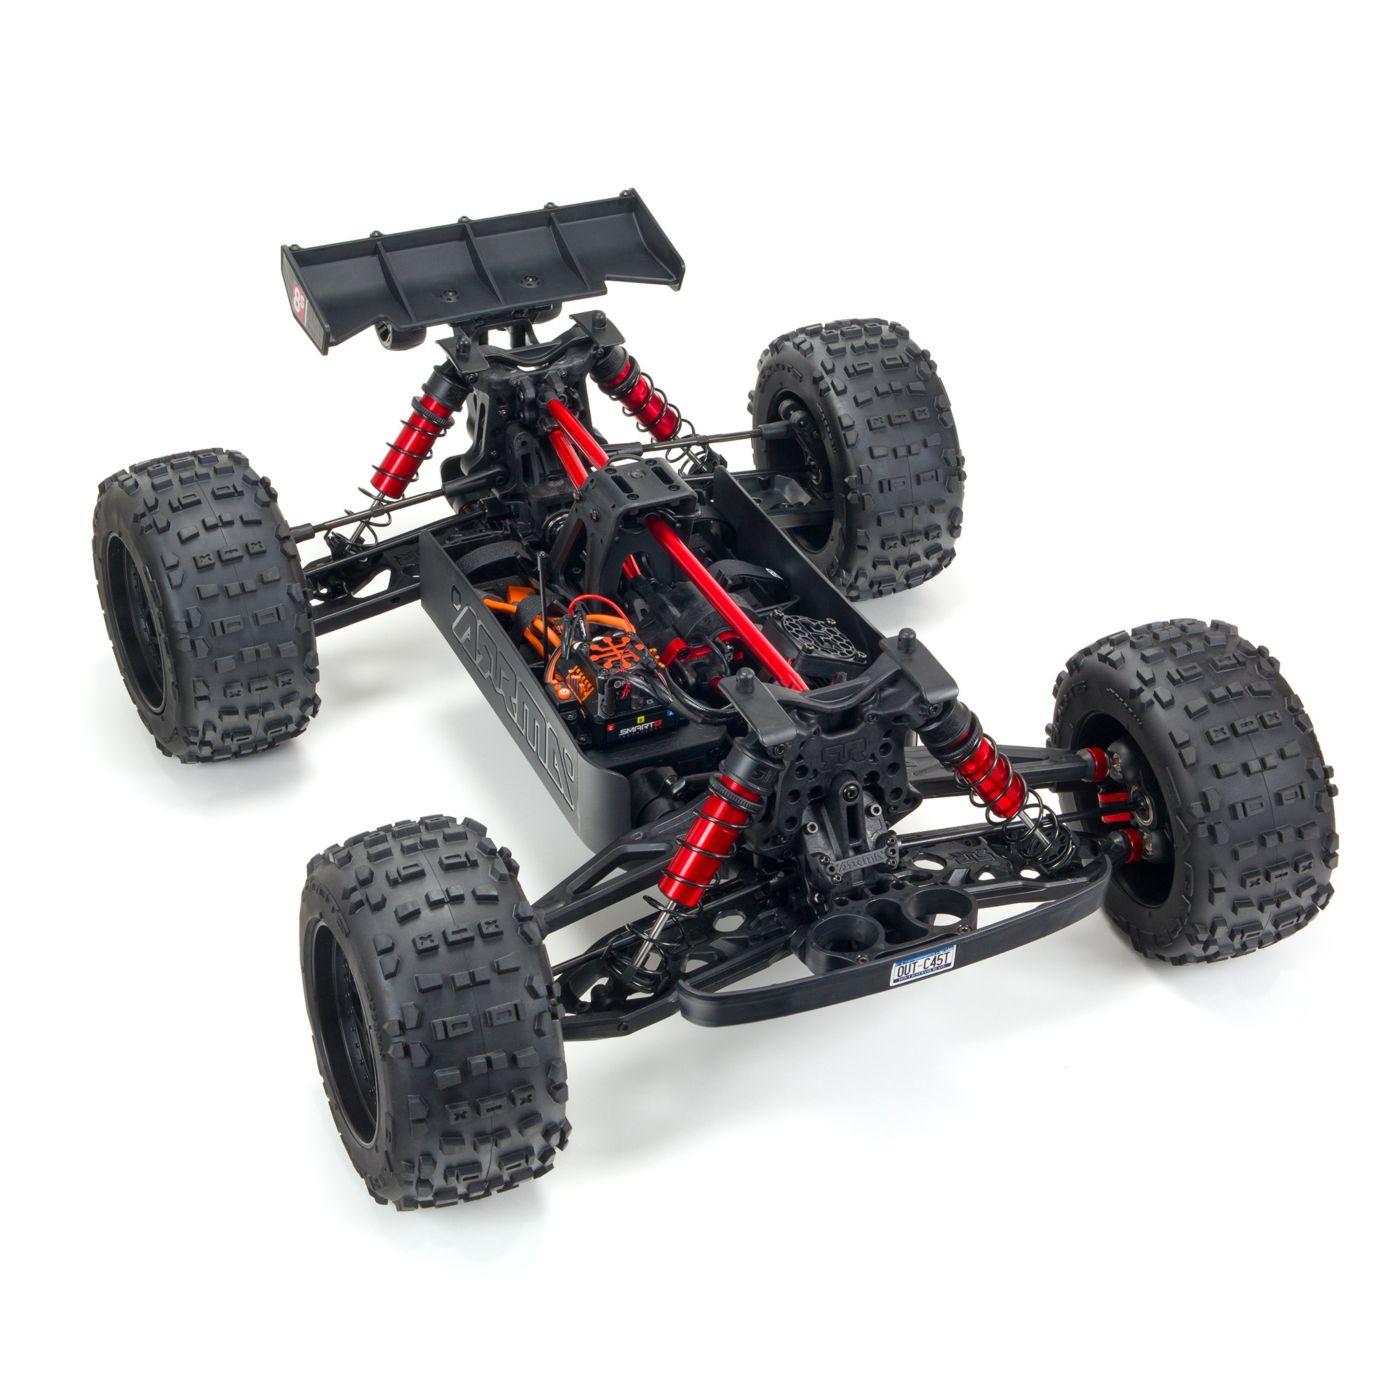 ARRMA Outcast Fifth-scale 8S Stunt Truck - Chassis